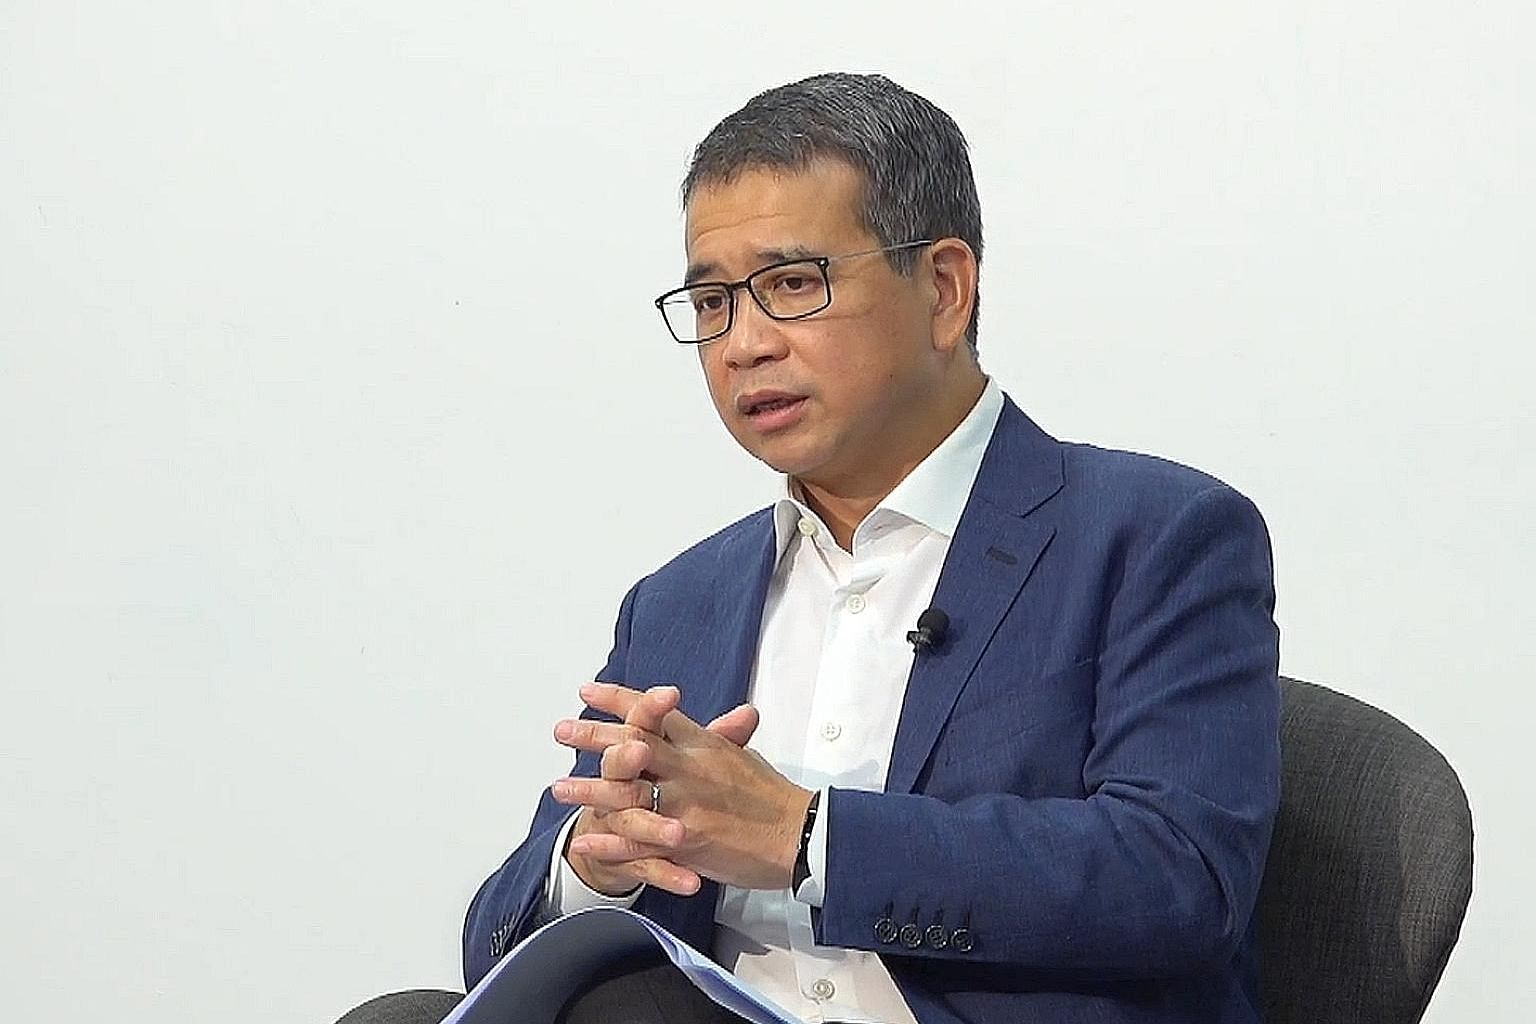 Second Minister for Law Edwin Tong spoke yesterday at a webinar on the challenges for individuals, families and business during the pandemic.